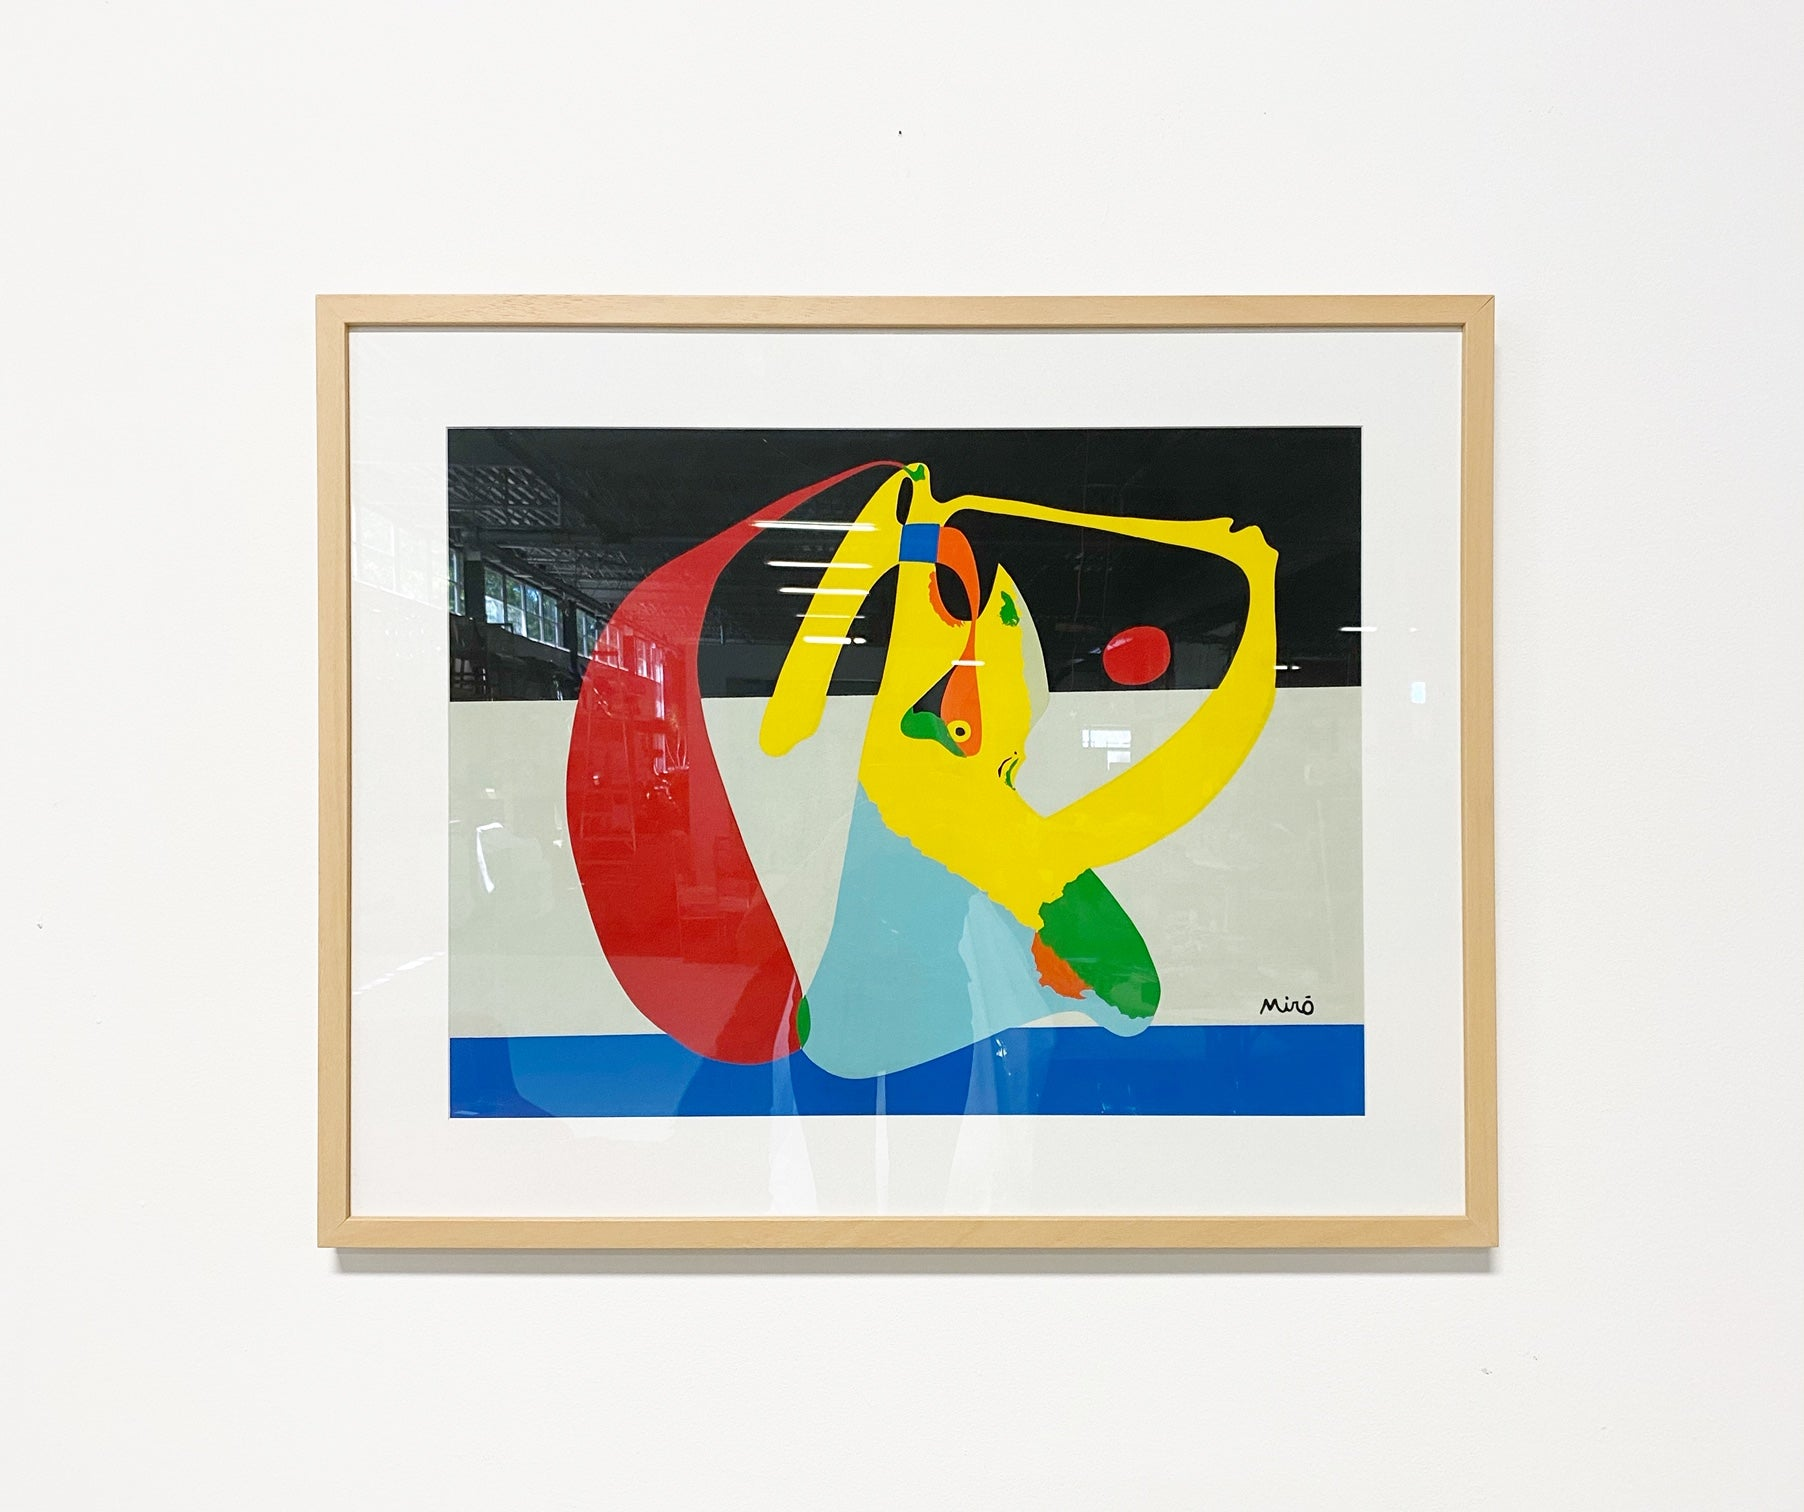 Joan Miro' Framed Screenprint